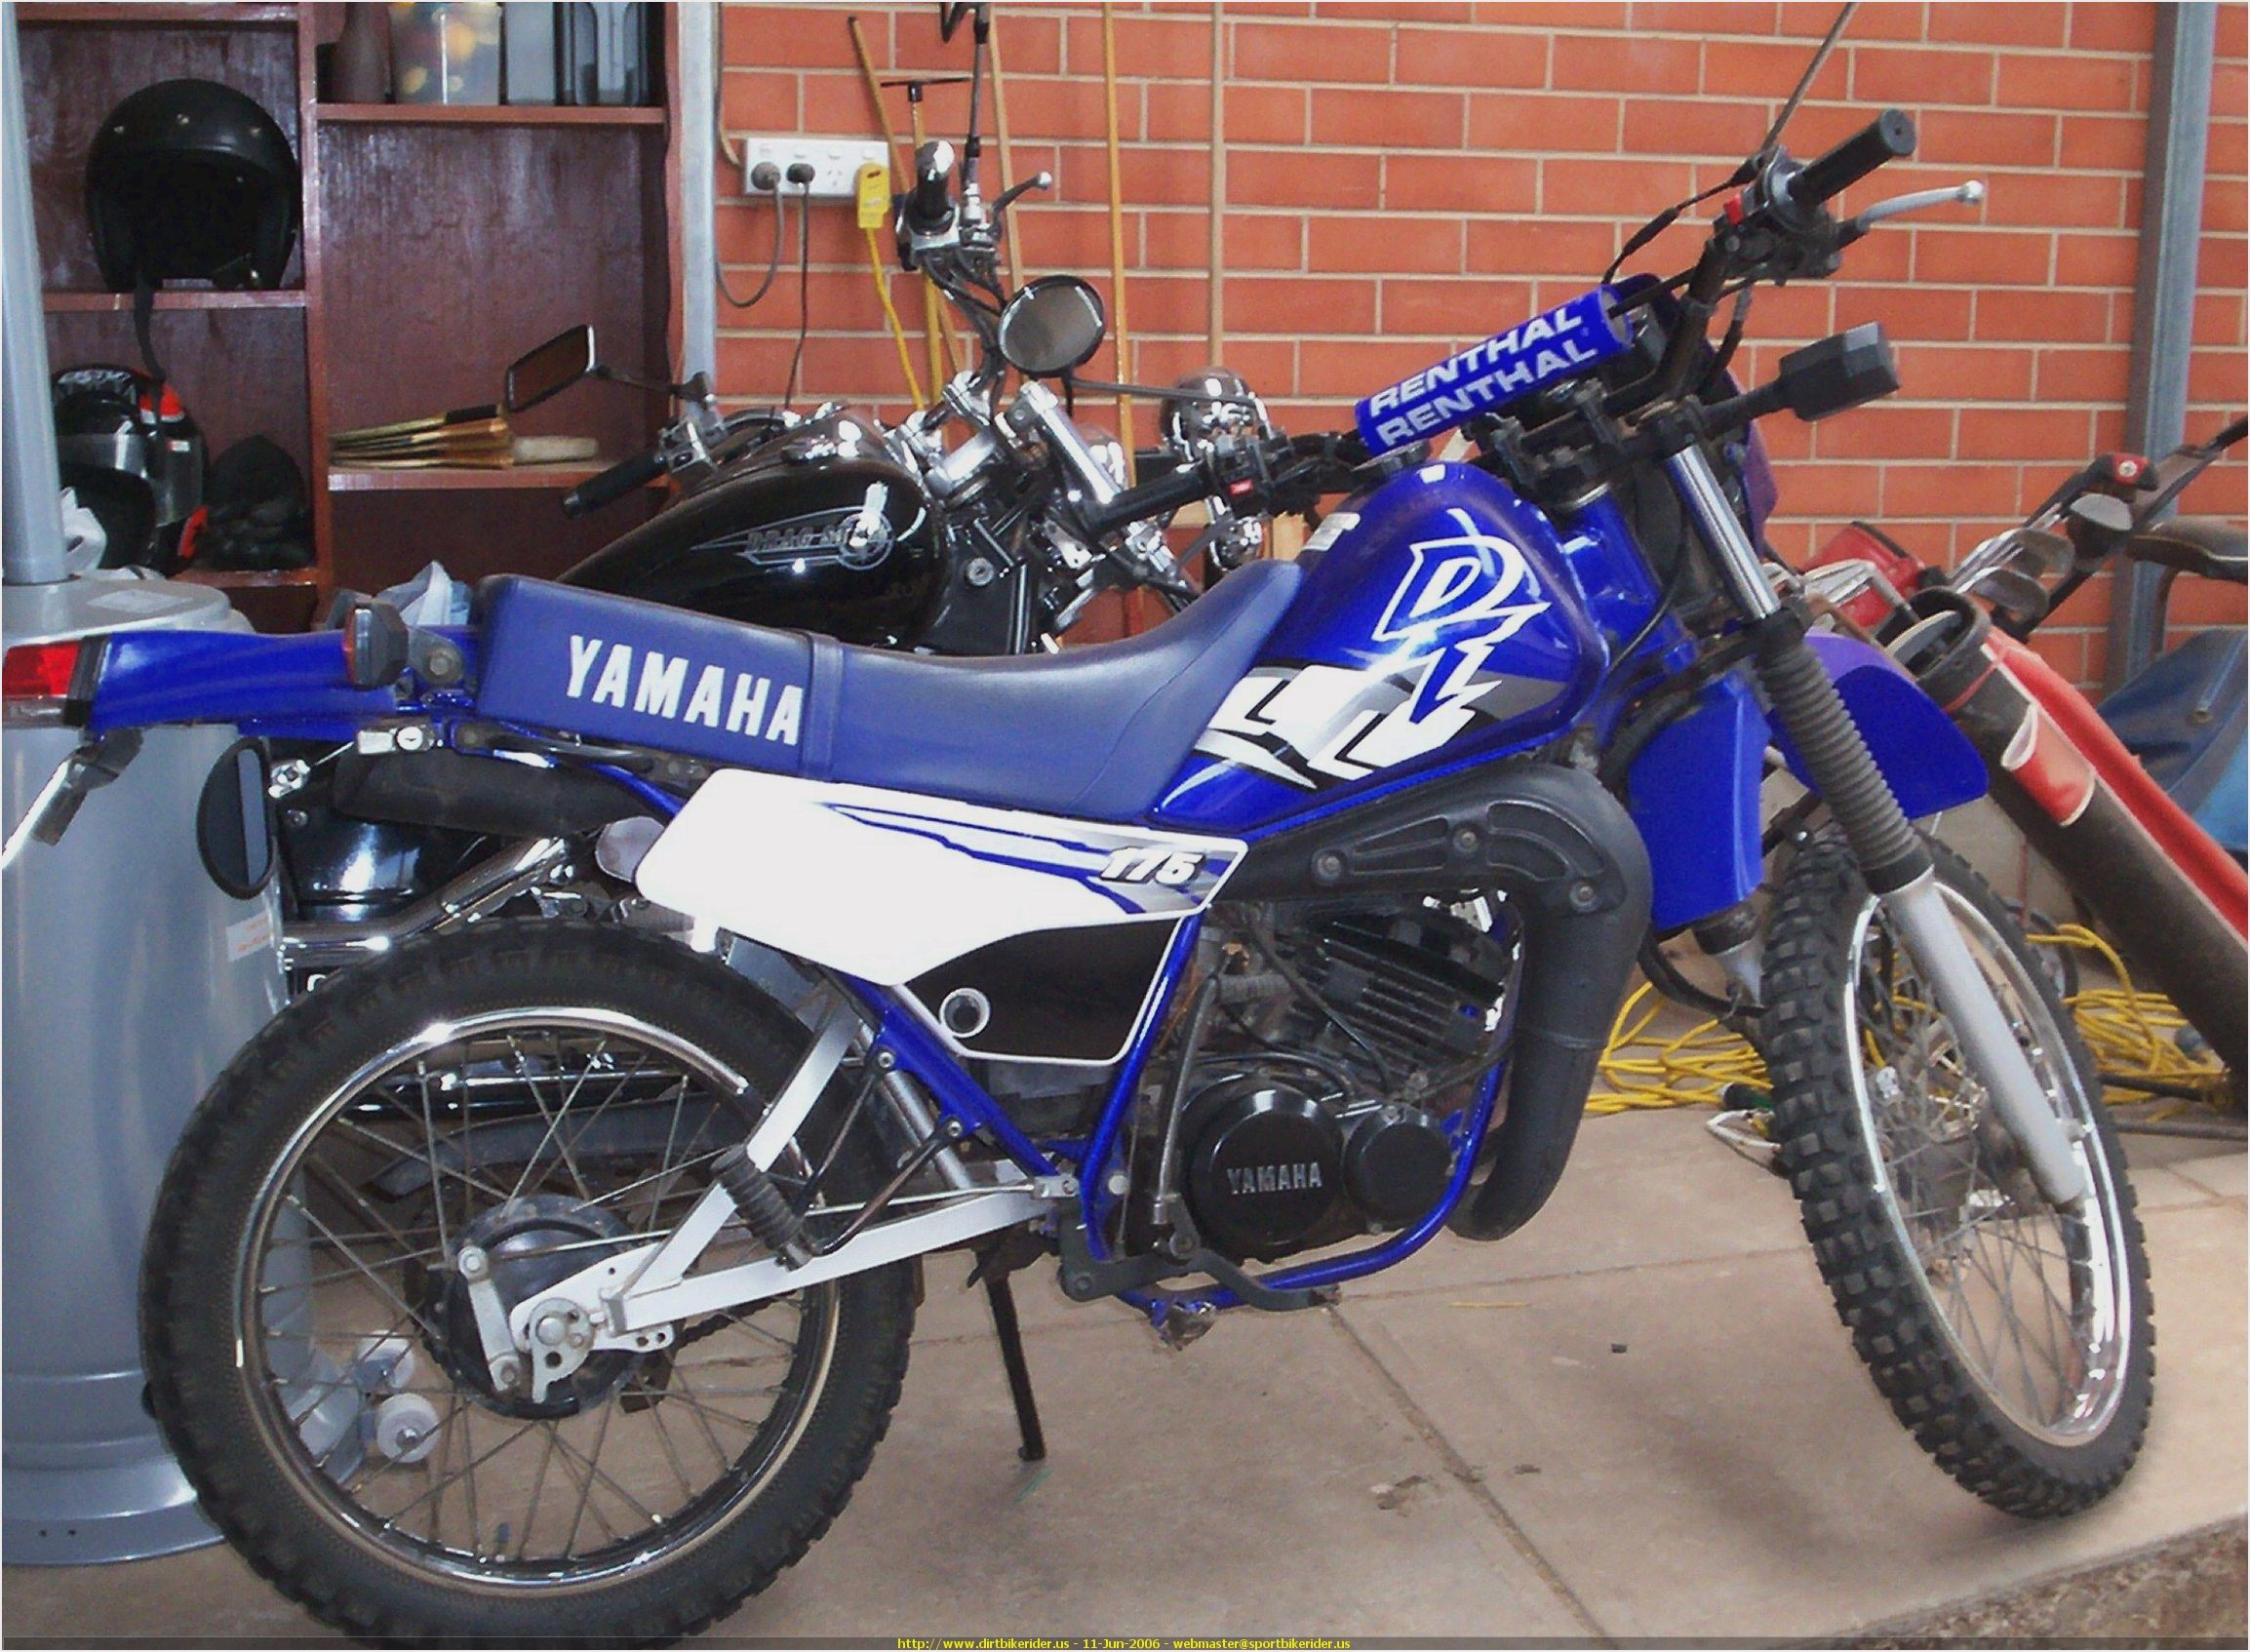 2006 yamaha dt 175 pics specs and information for Yamaha 175 sho